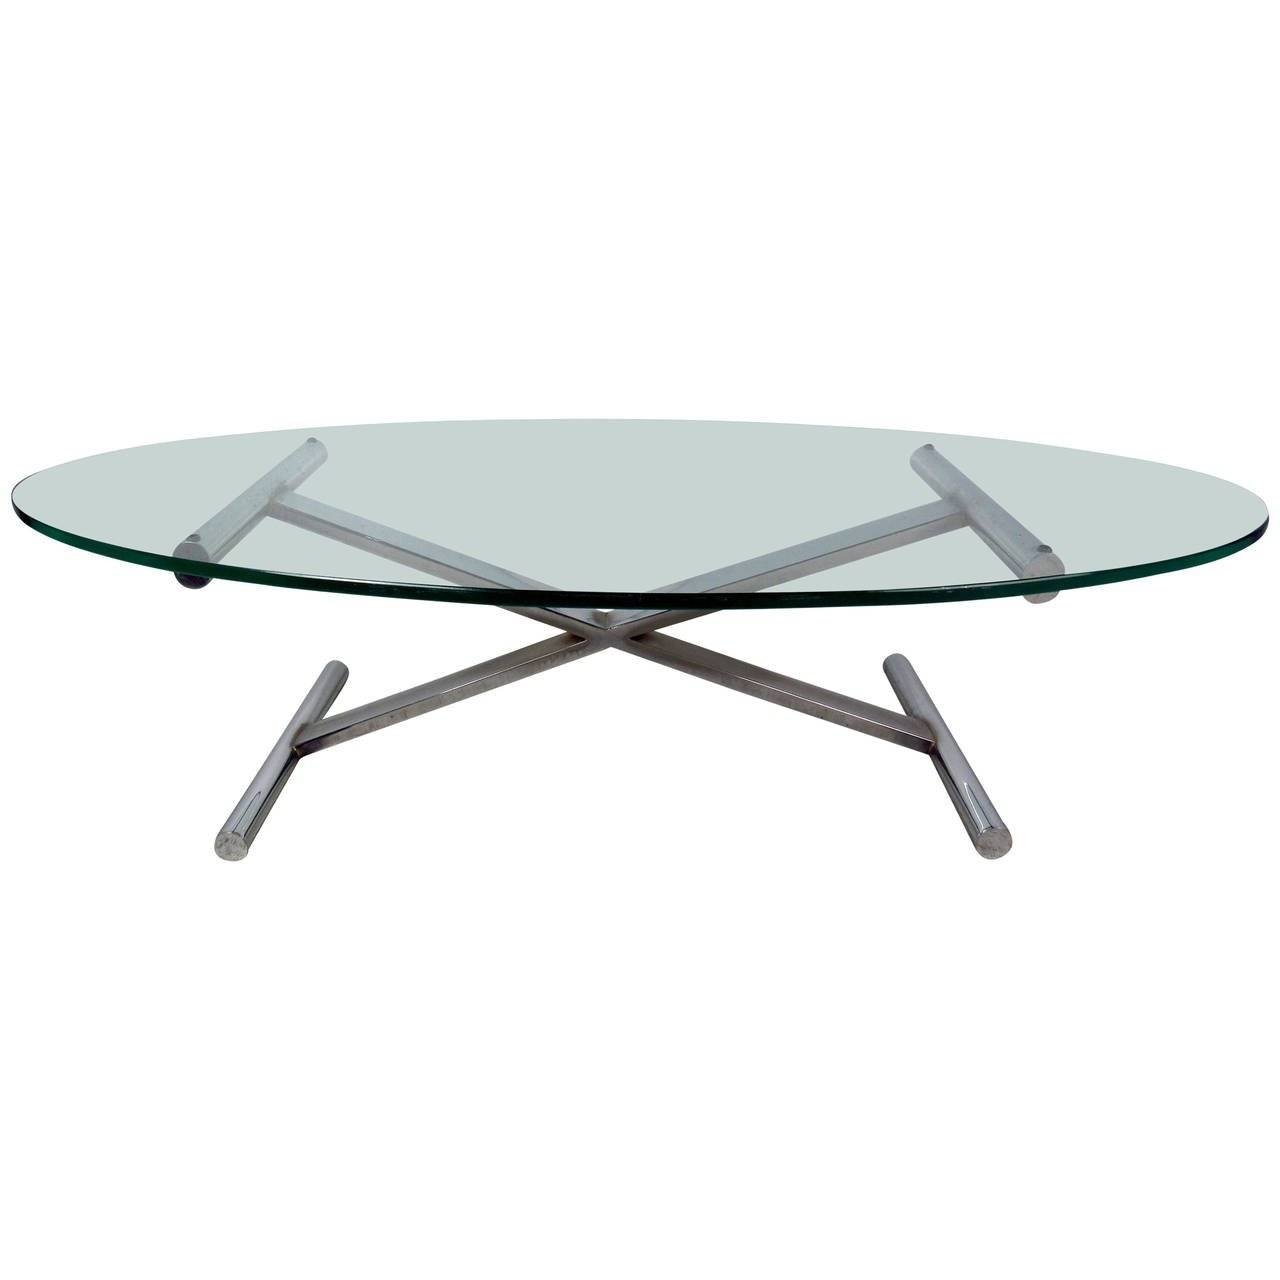 Oval Shaped Glass Top Coffee Table With Chrome Base For Sale At with Oval Shaped Glass Coffee Tables (Image 25 of 30)